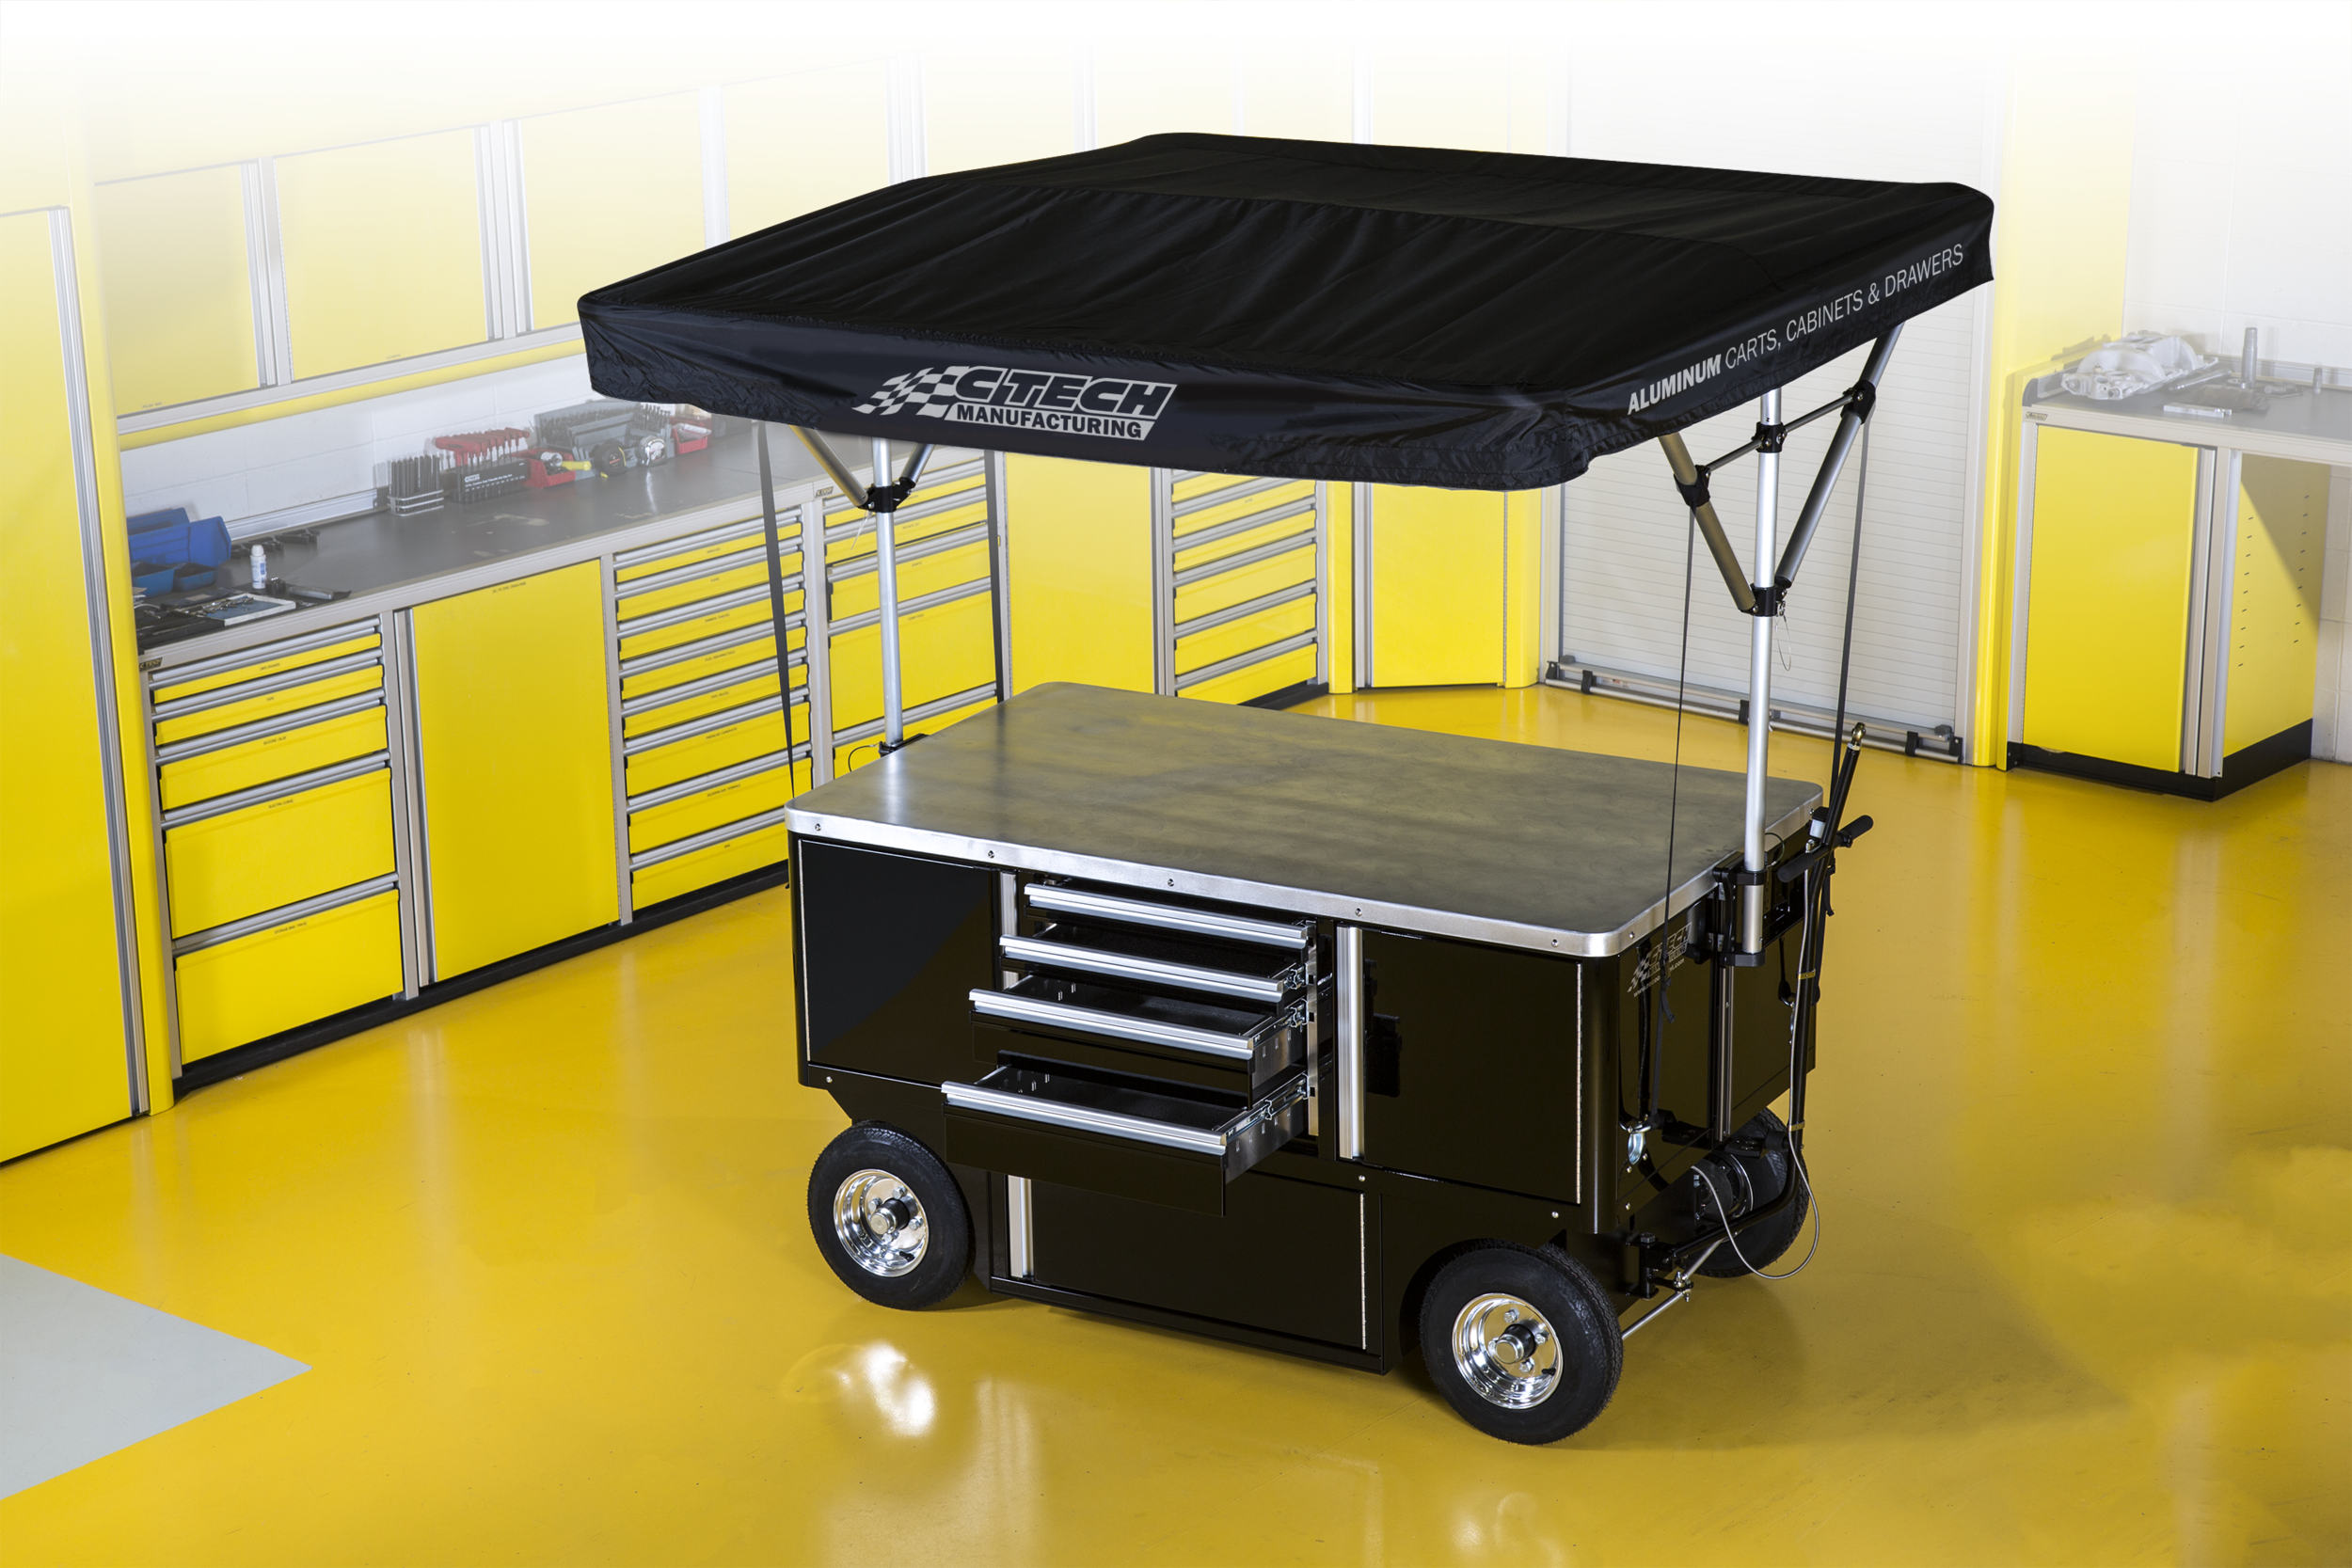 Standard Chassis - Work Top Cart with Canopy option - perfect configuration for Road Race applications